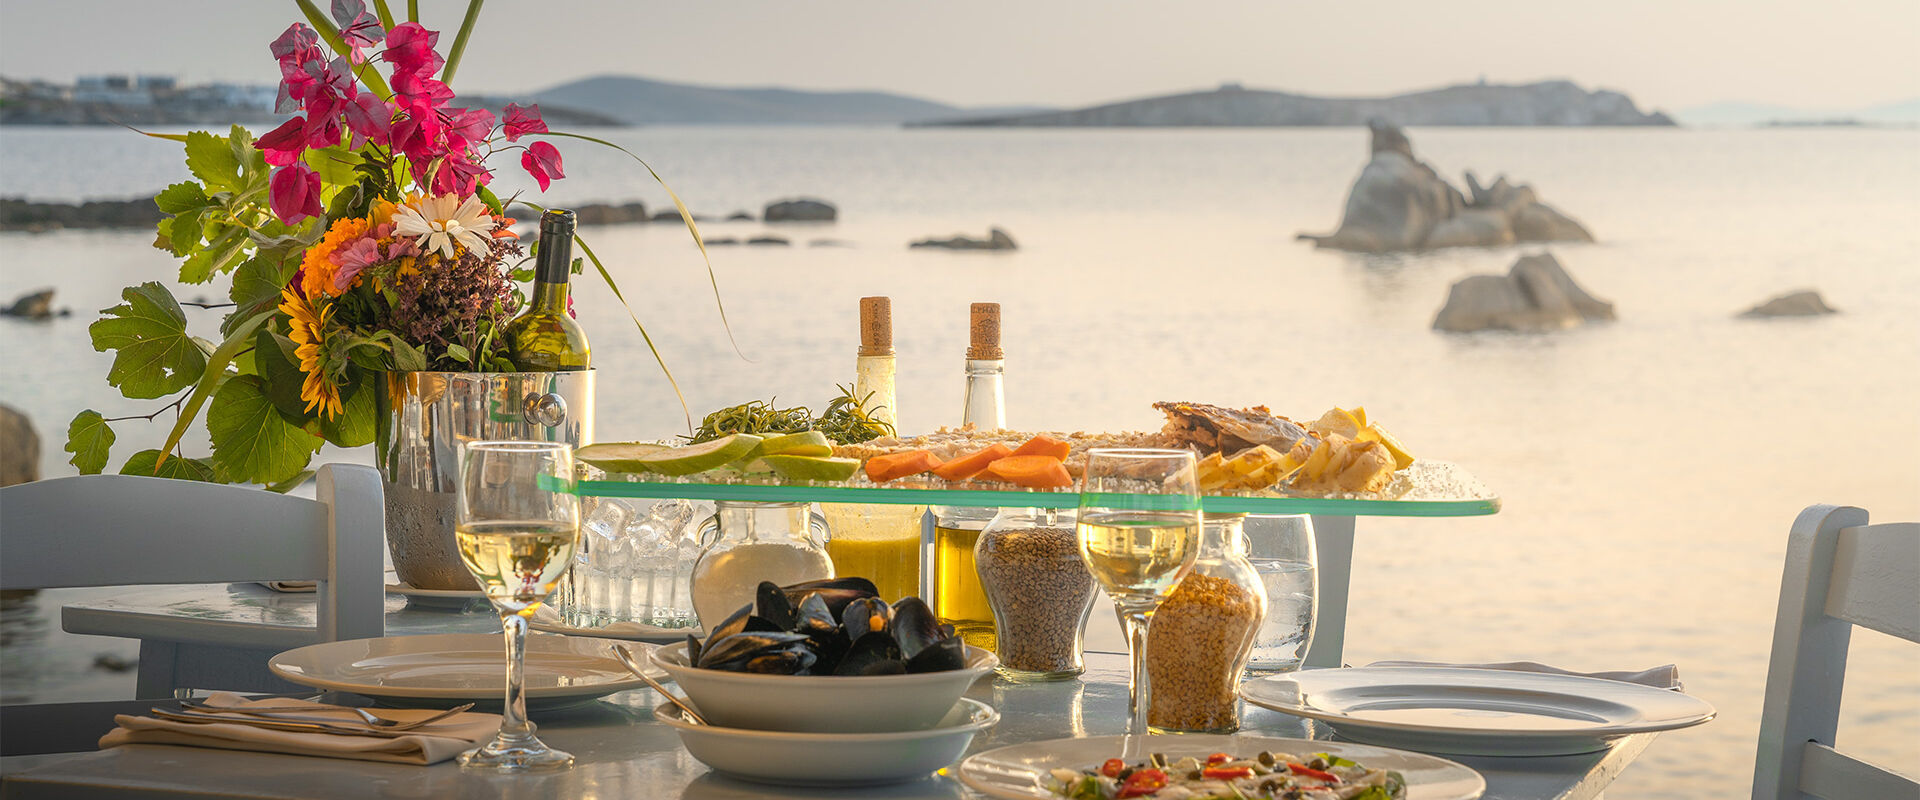 From a meal in a traditional Greek taverna to the most refined international tastes, there's an elegance and style to the food that sets Mykonos apart.